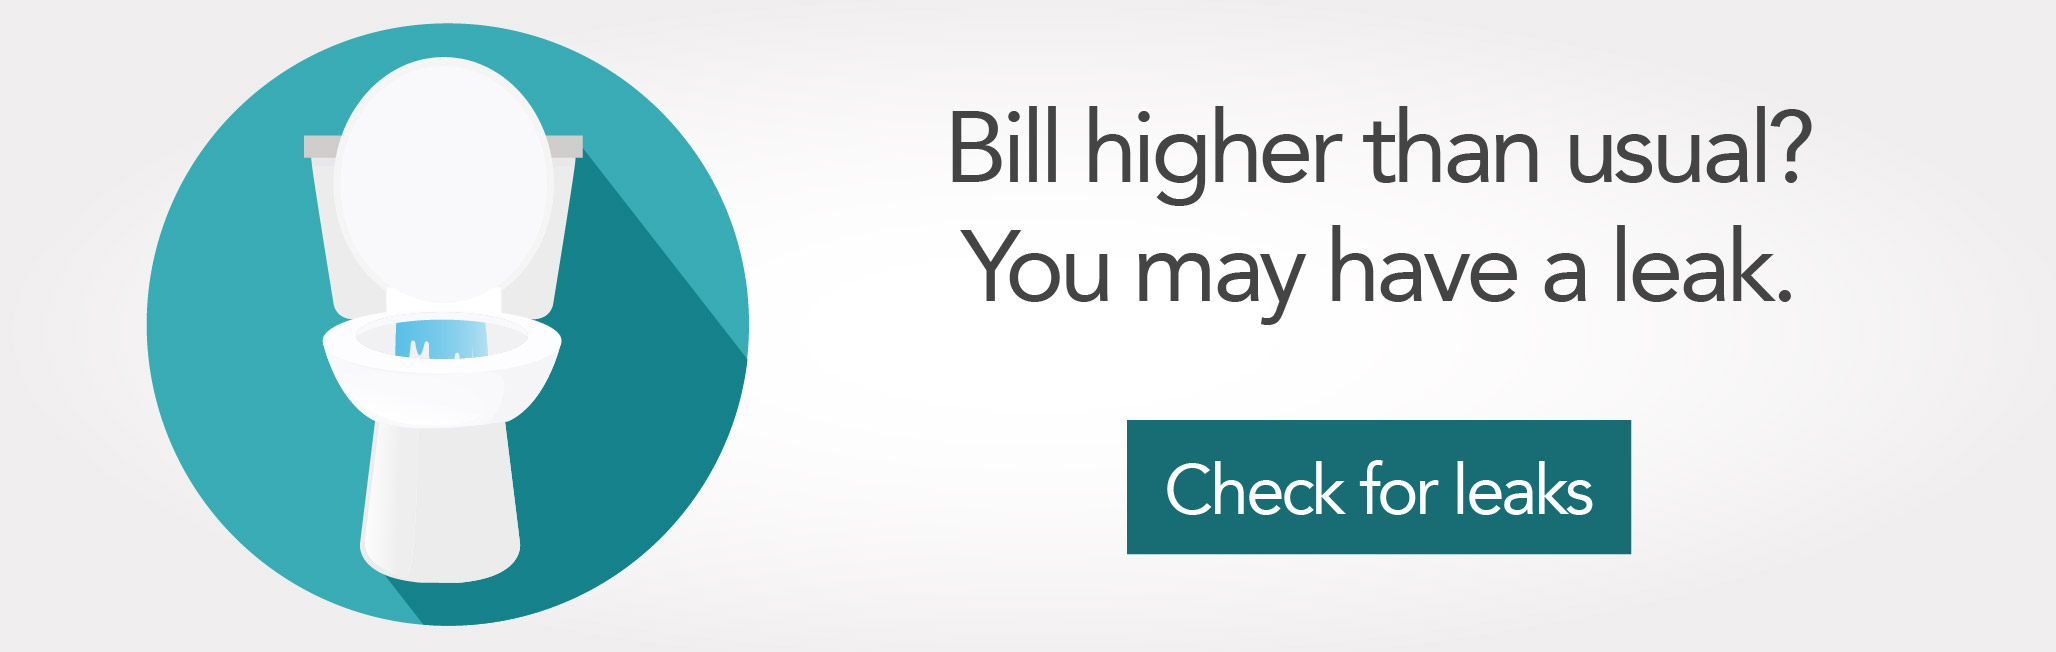 Bill higher than usual? You may have a leak. Click for more information on undetected leaks.